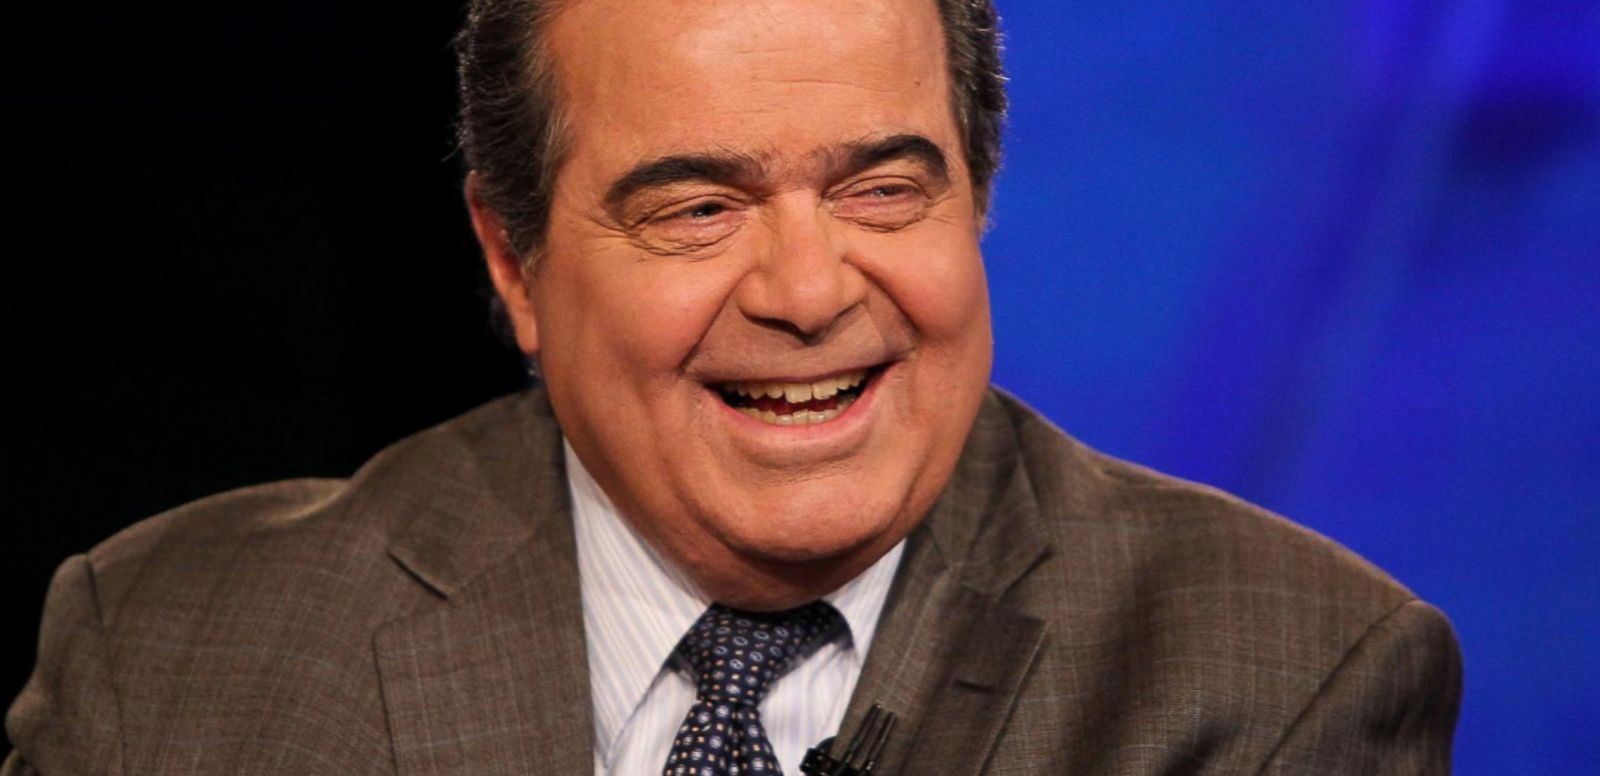 VIDEO: Justice Scalia in His Own Words